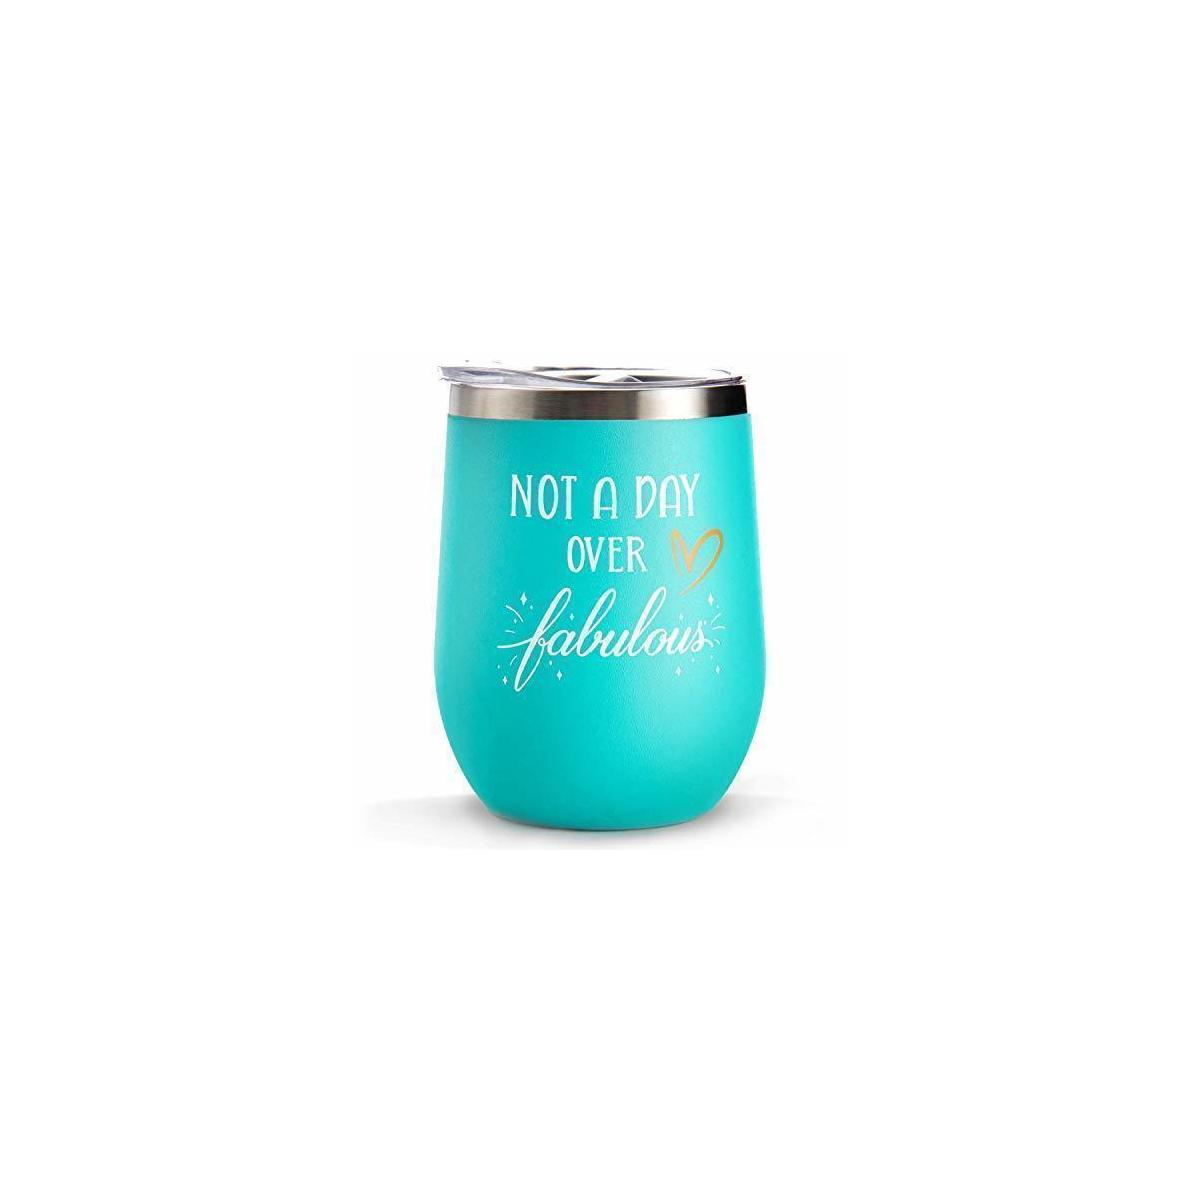 The Perfect Women's Birthday Gift - Premium Insulated Wine Tumbler - Remind her just how fabulous she is!  Make her feel special and loved on her birthday or just because - Only the Mint Tumbler is available for the rebate